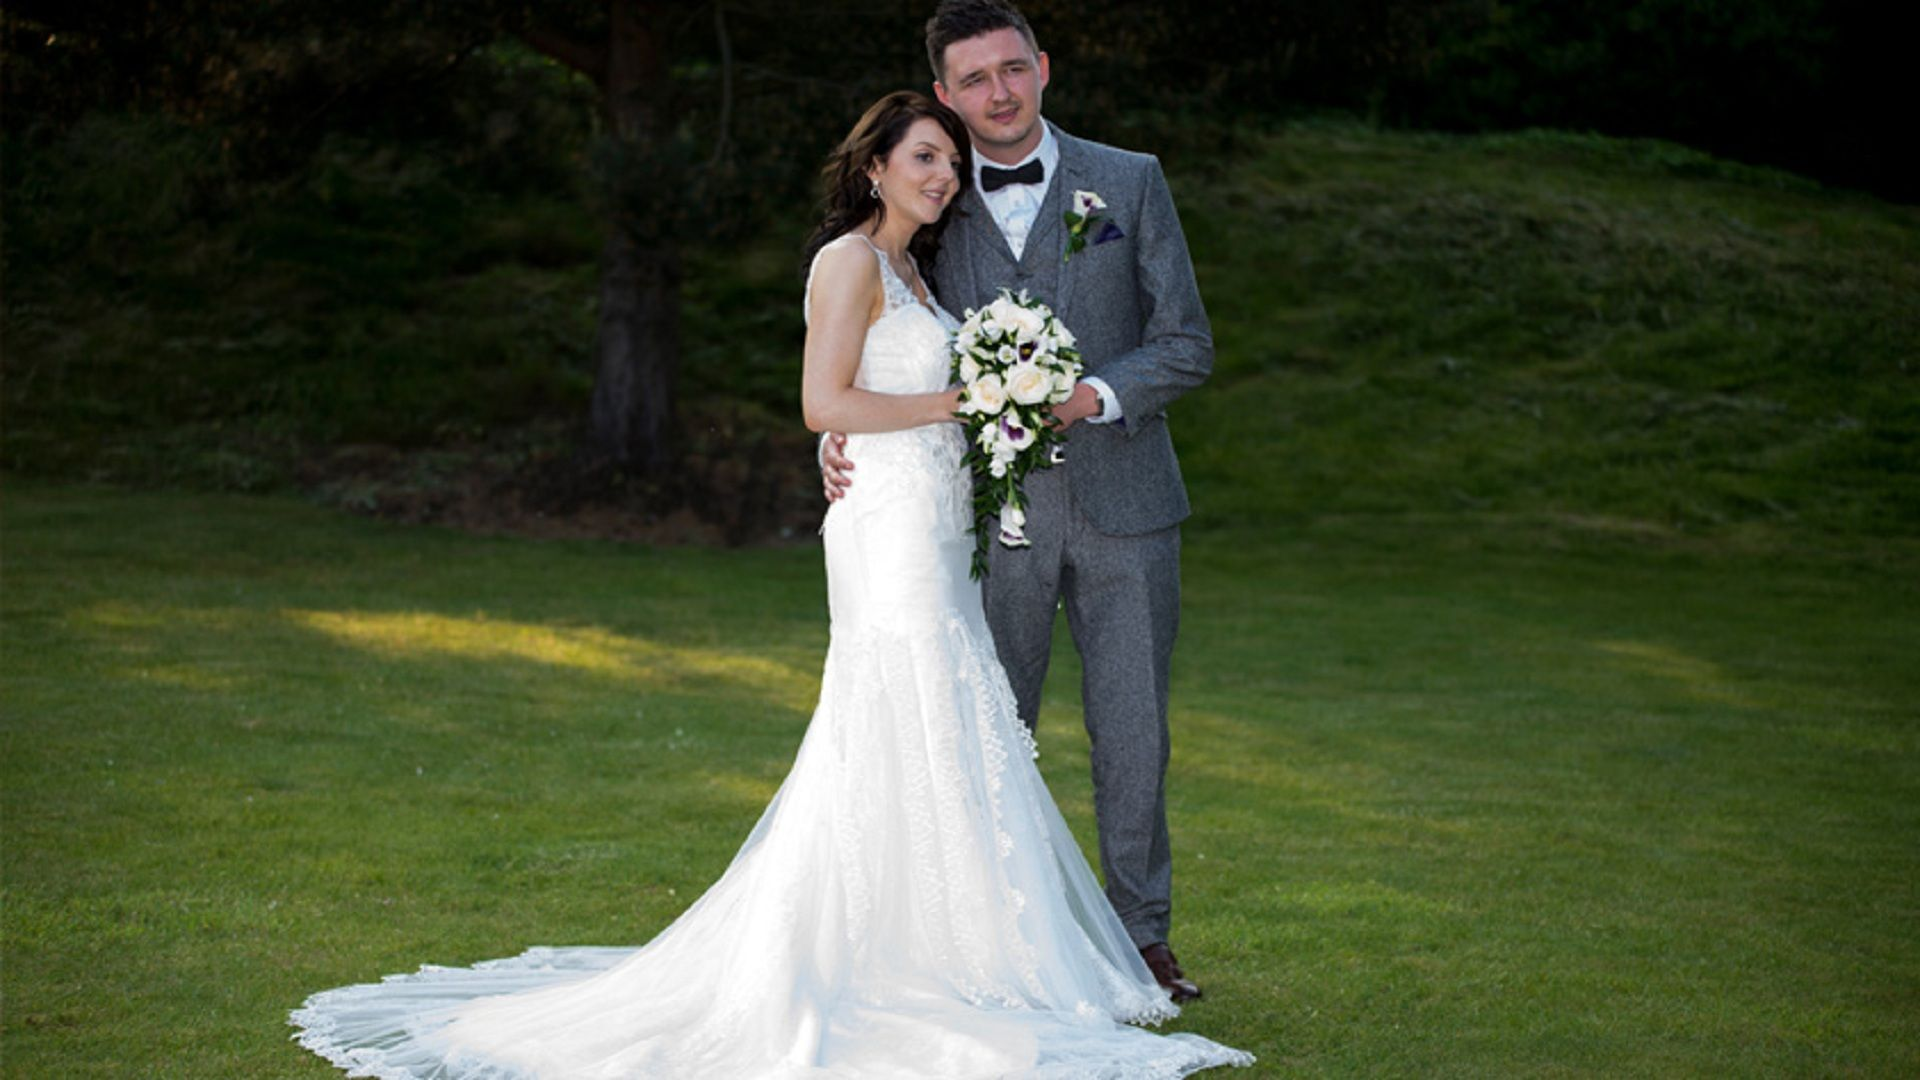 Image result for Making Your Wedding Day Special With The Help Of Experienced Wedding Photographers